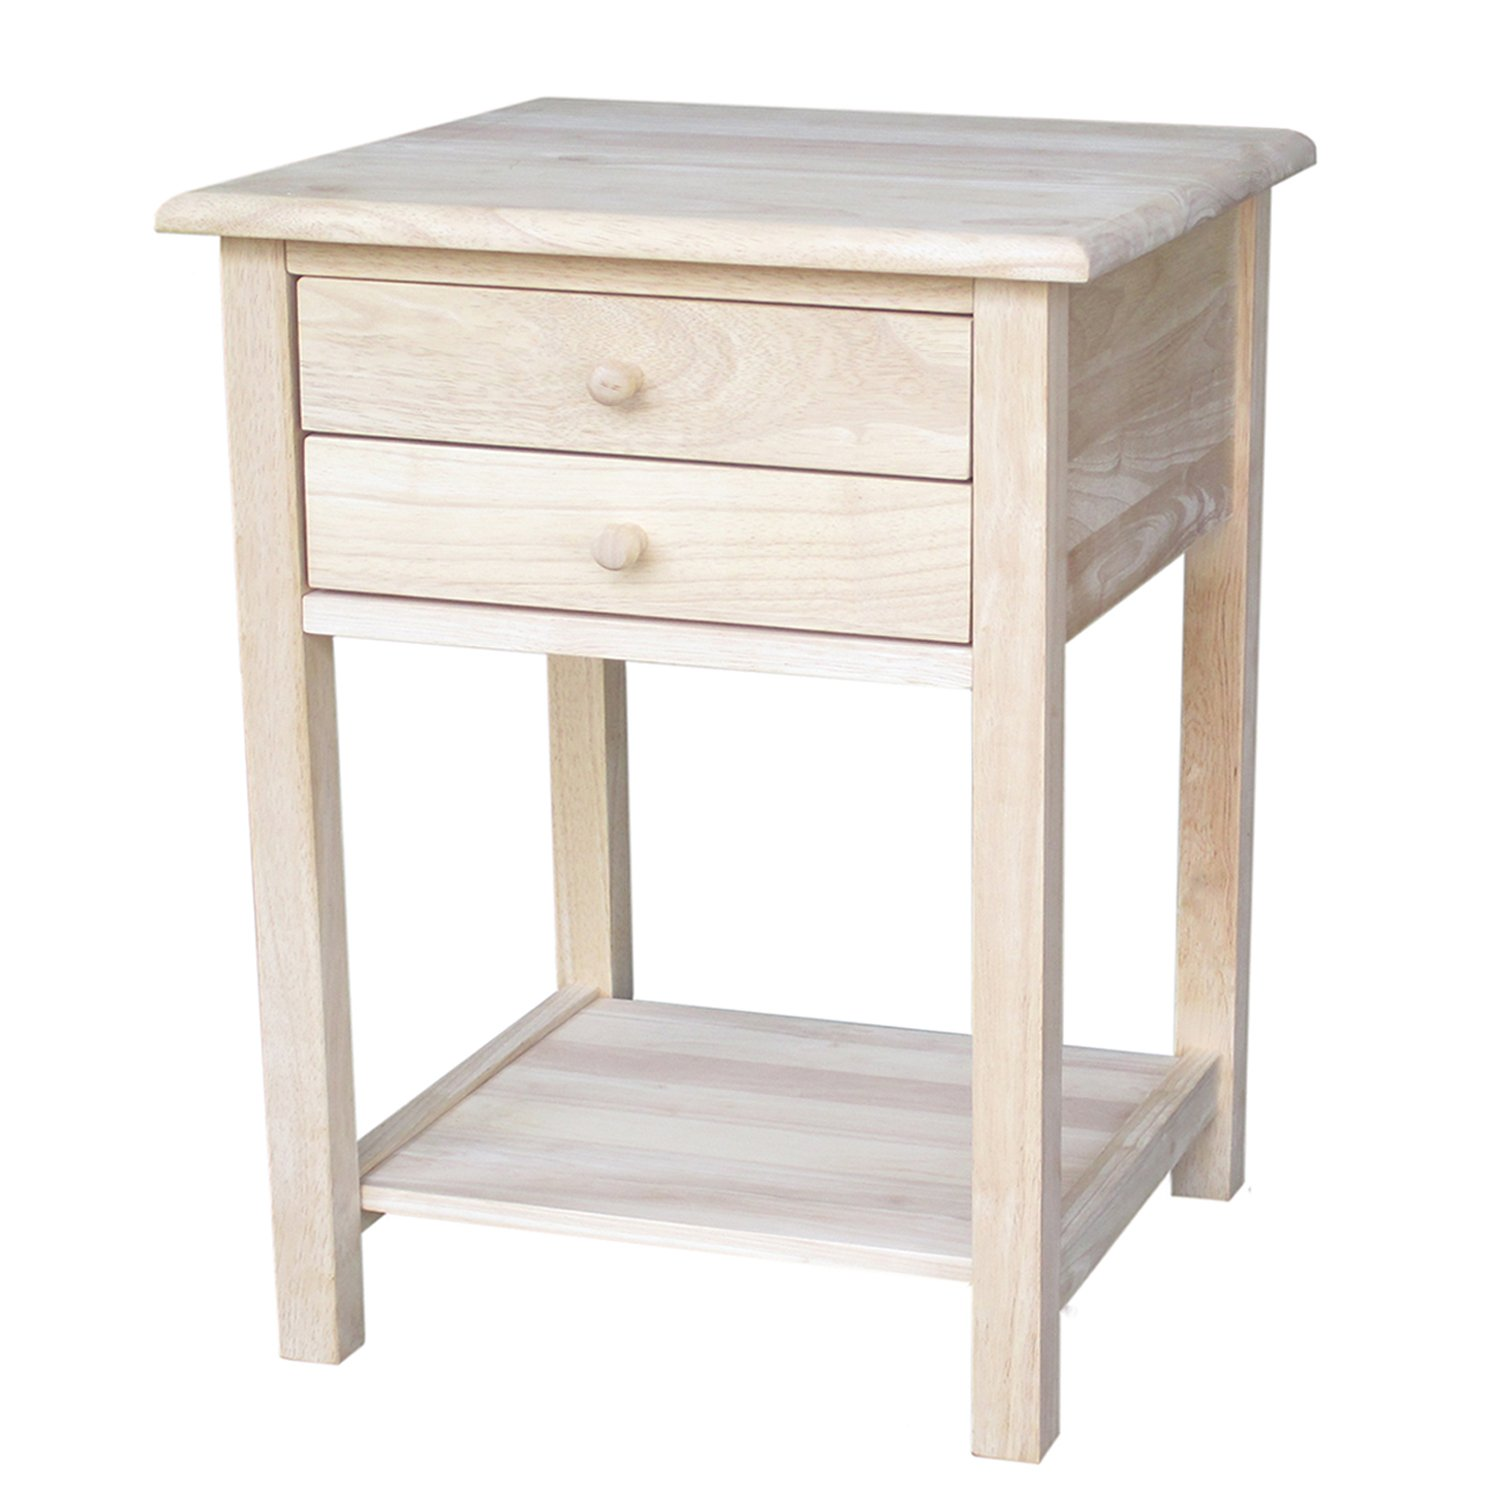 International Concepts OT-92 Lamp Table, Unfinished